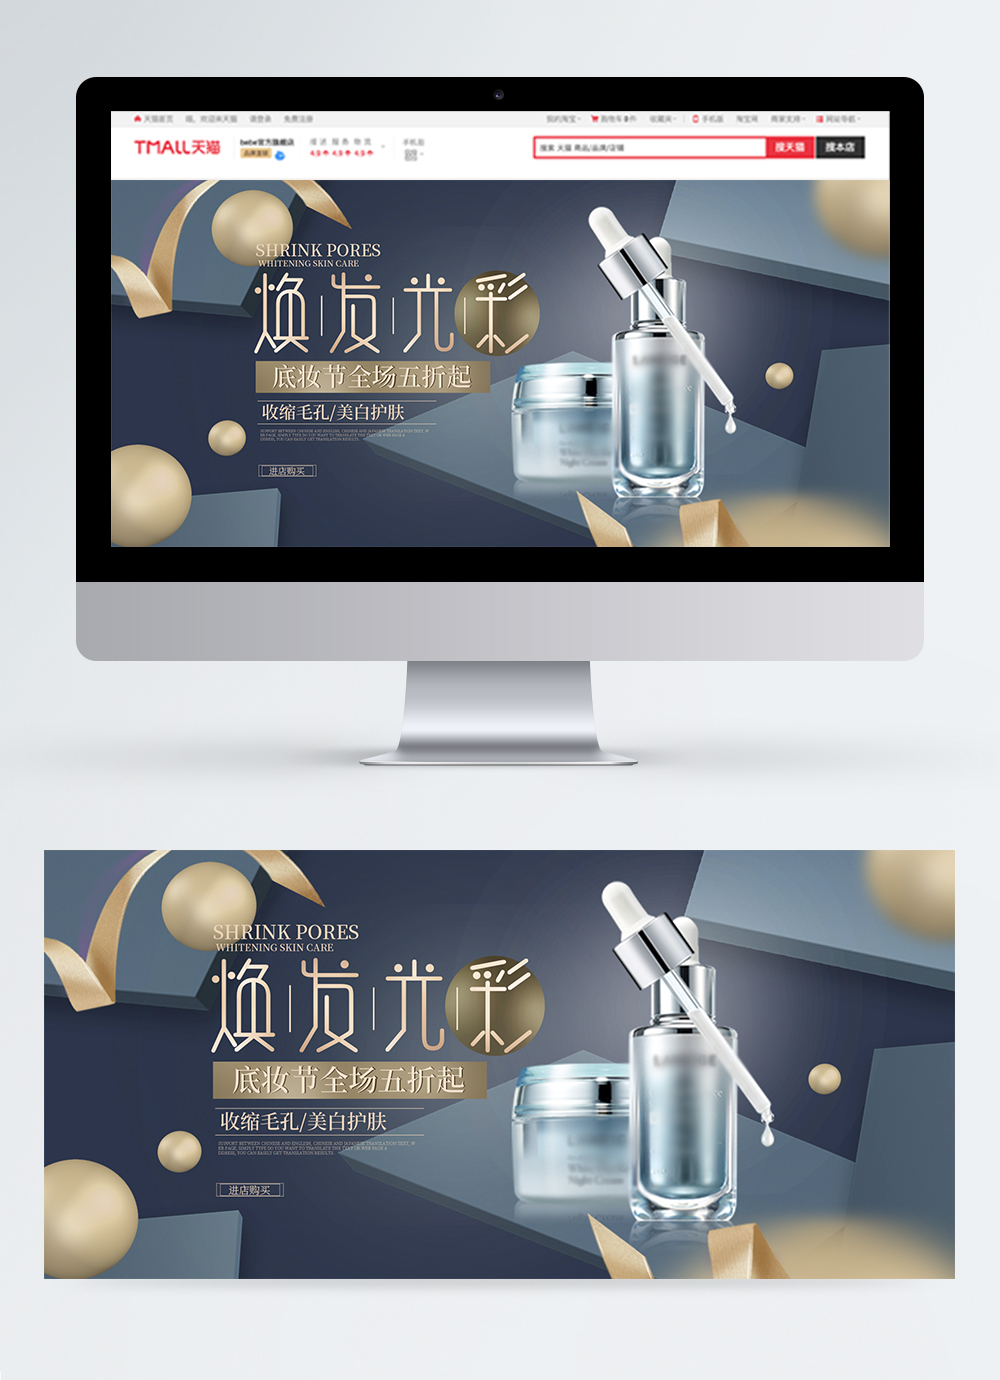 Brilliant Skincare Products Promote Taobao Web Banner Template Image Picture Free Download 400804456 Lovepik Com